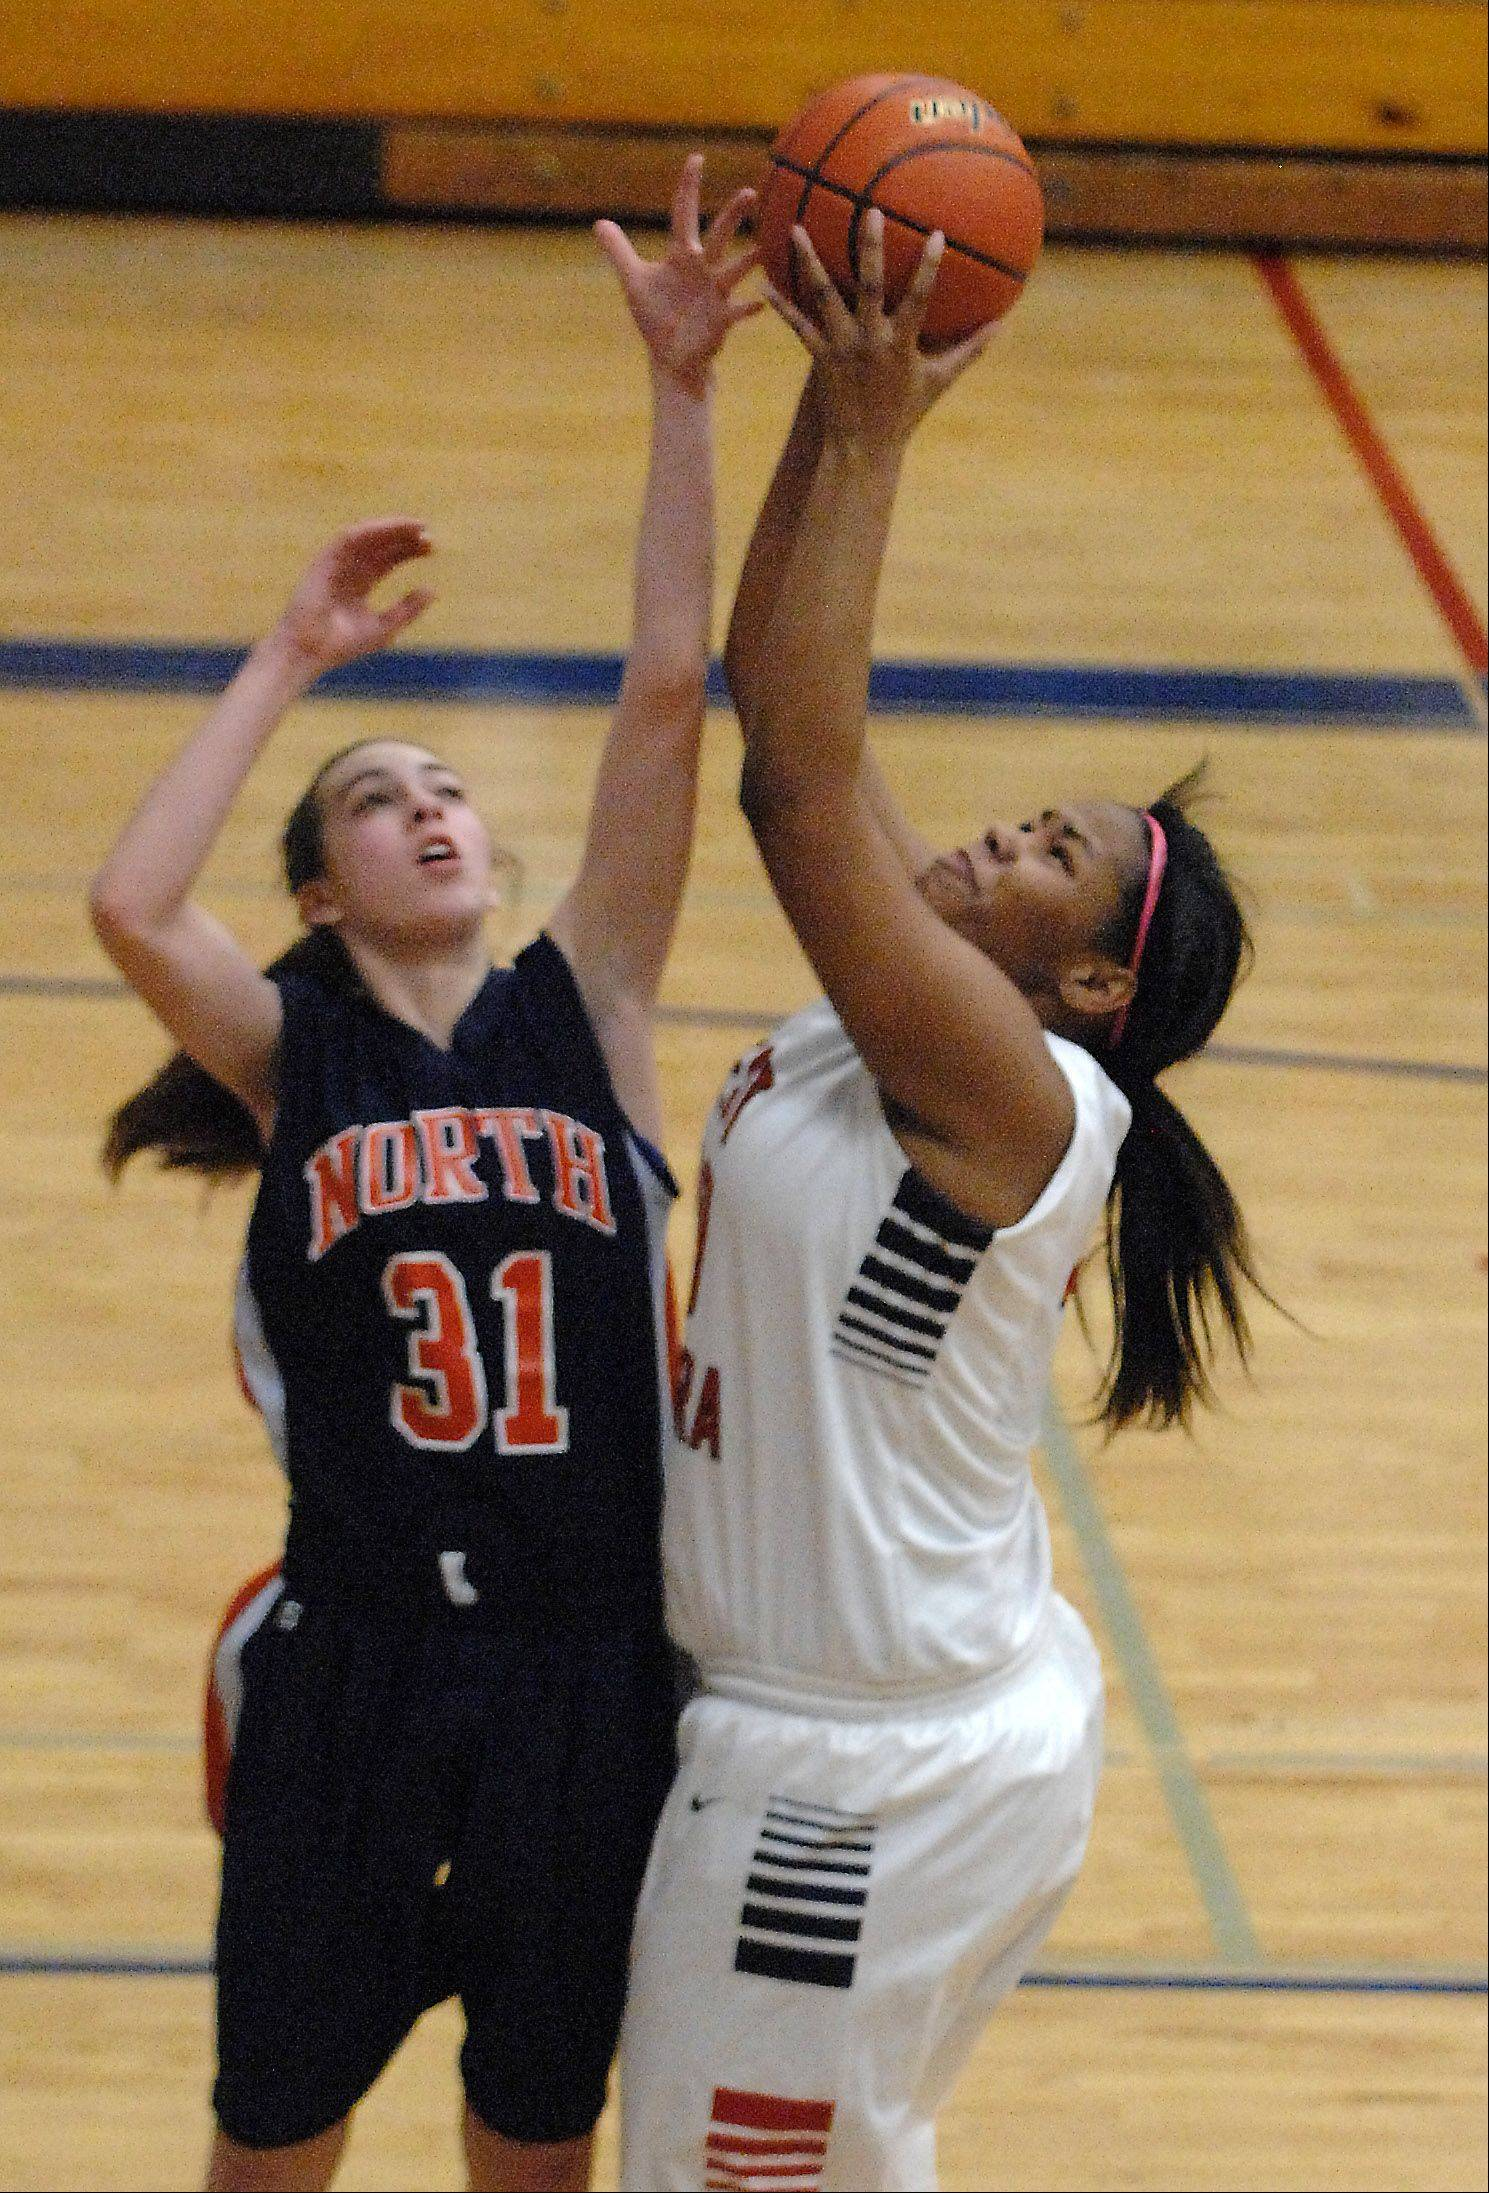 West Aurora's Kyler Robinson shoots over Naperville North's: aire; Pereira during Thursday's game in Aurora.